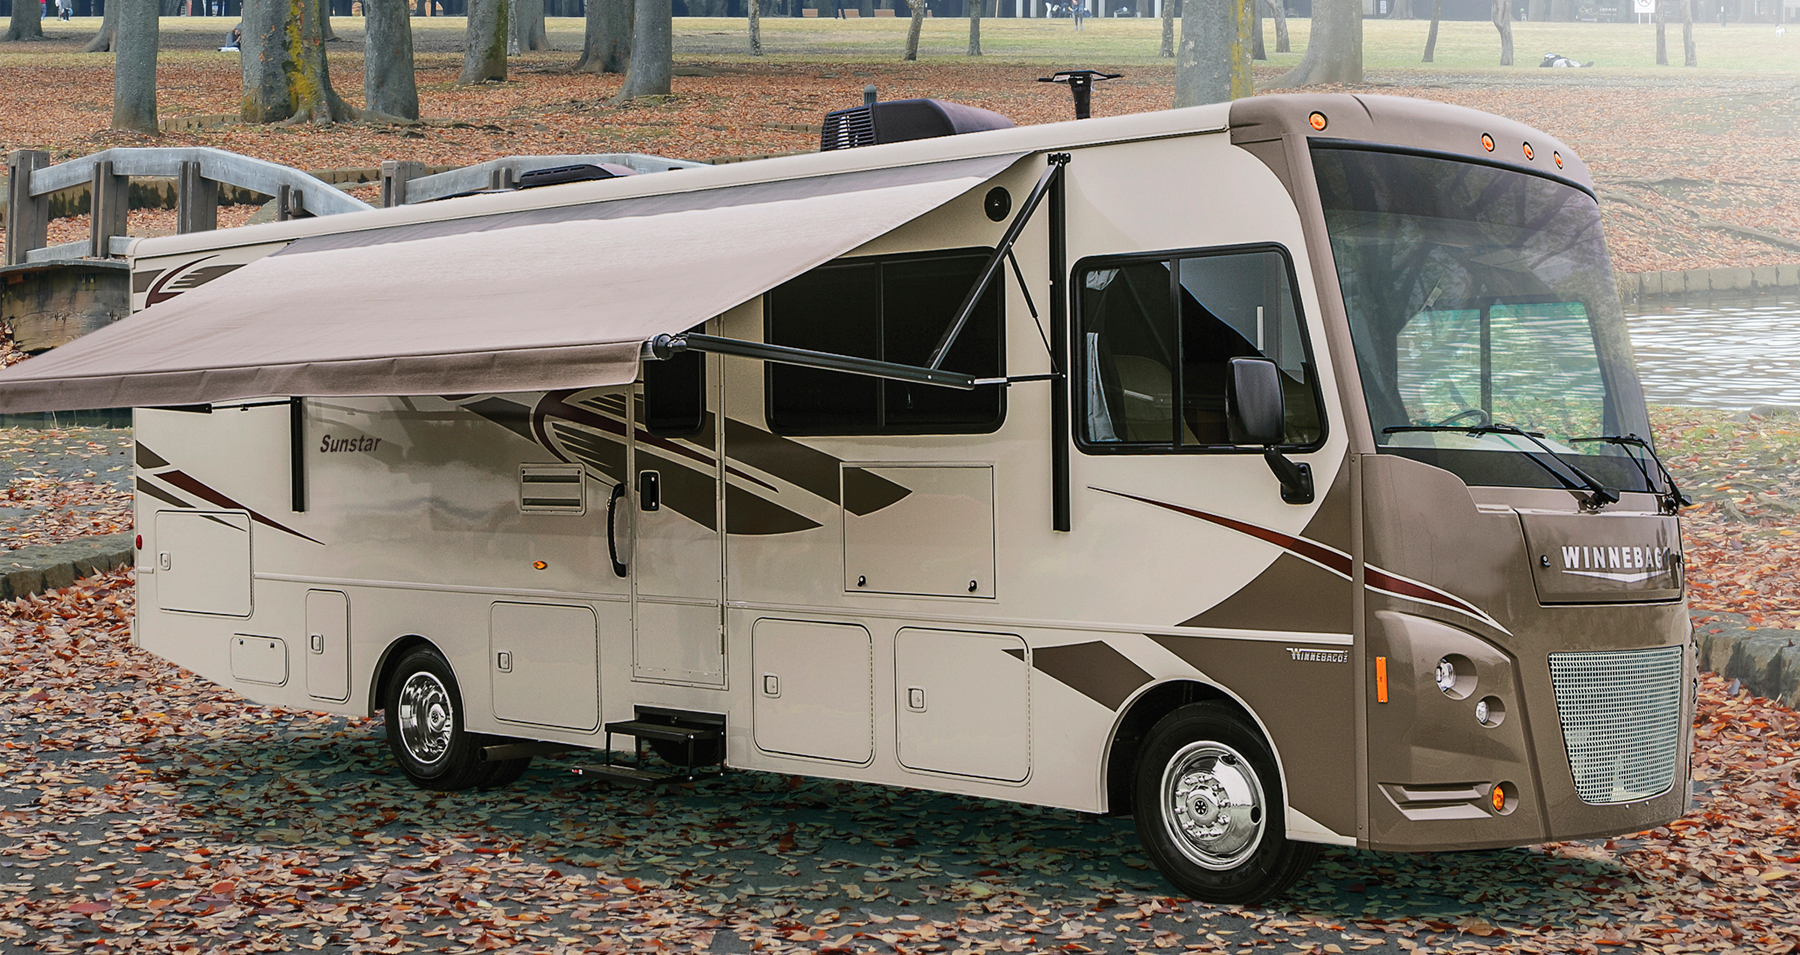 Winnebago sunstar 29ve a motorhome for the whole family for Class a motor homes for sale